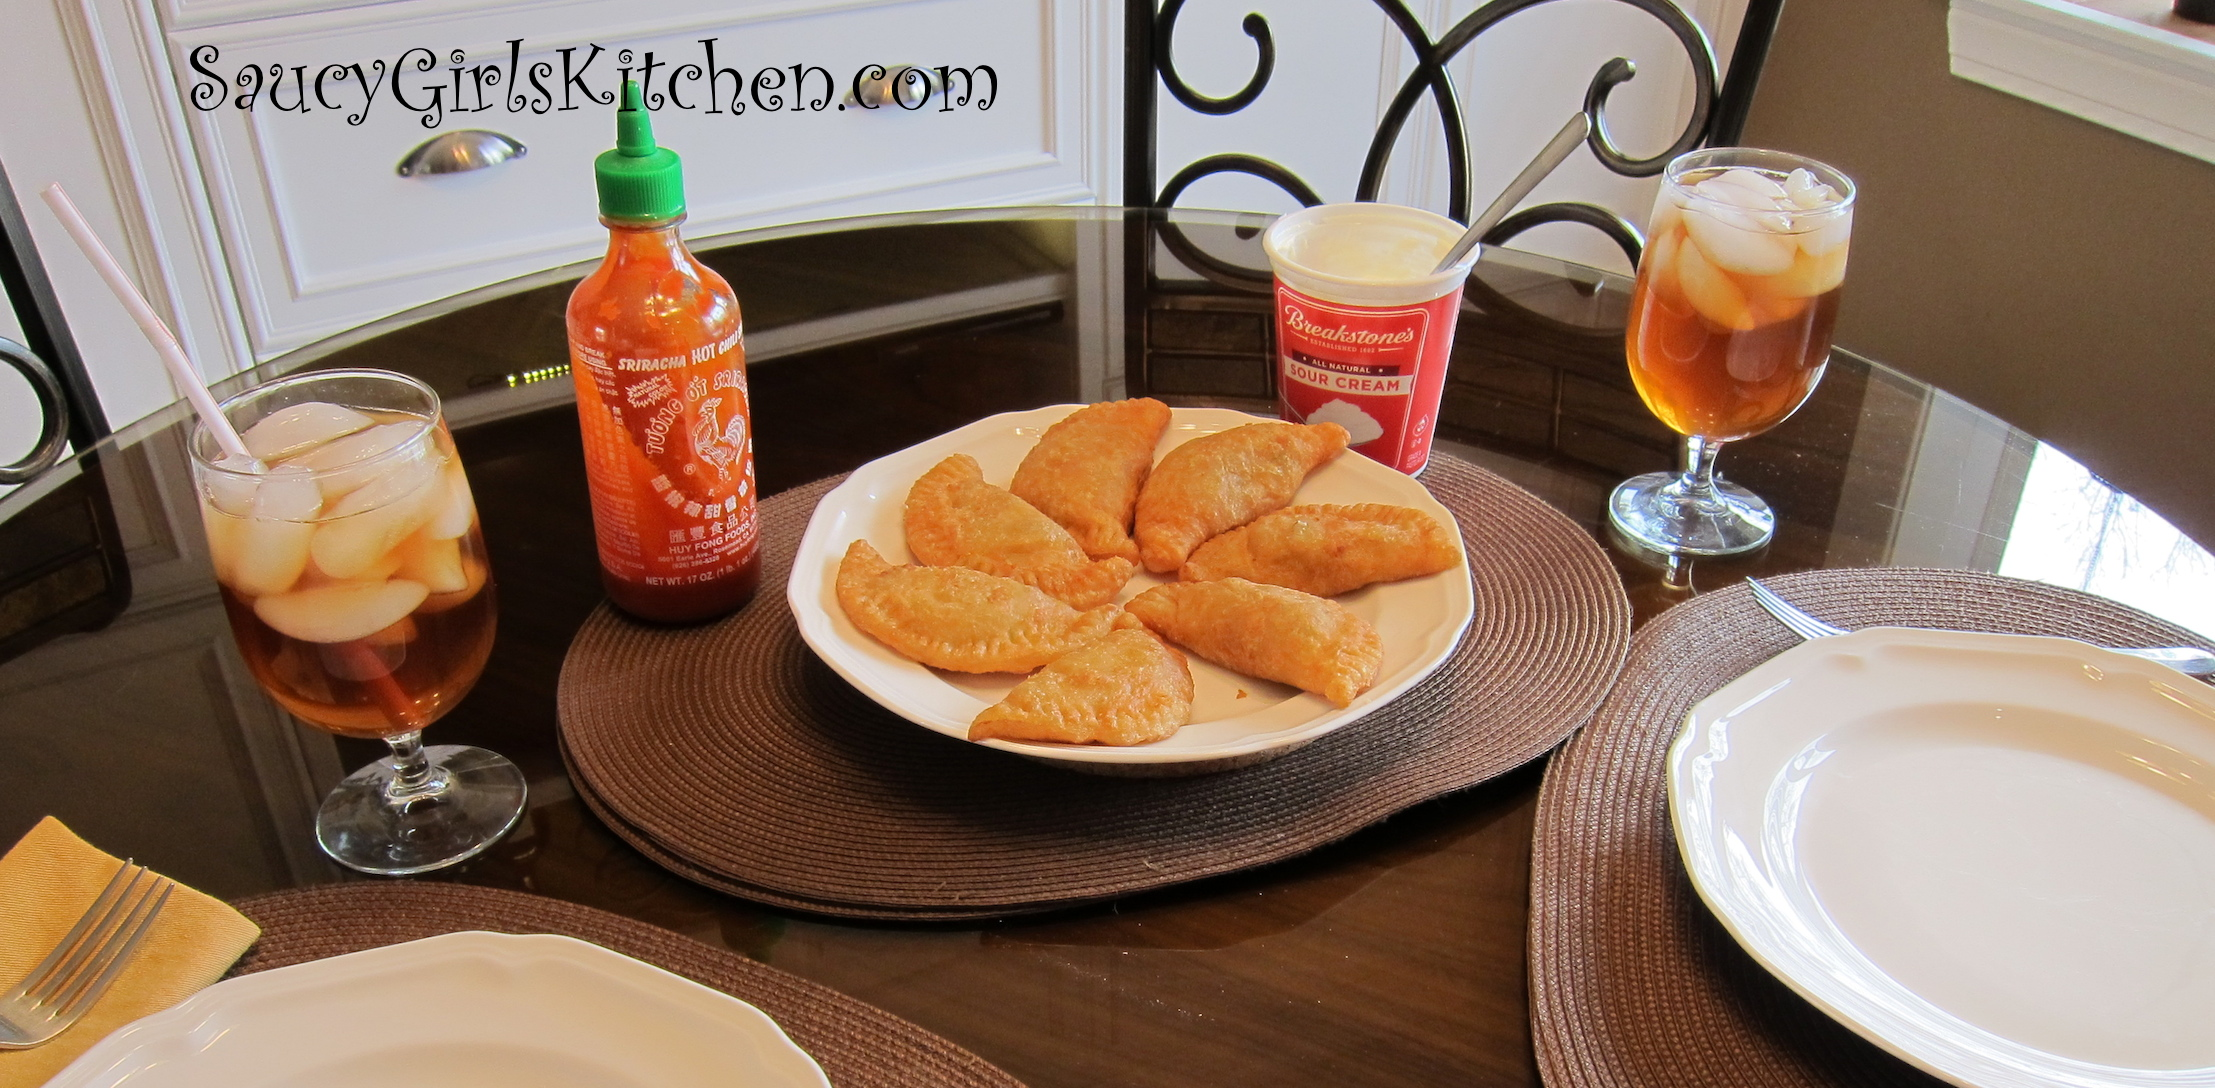 Beef Empanadas with Sour Cream and Sriracha Sauce